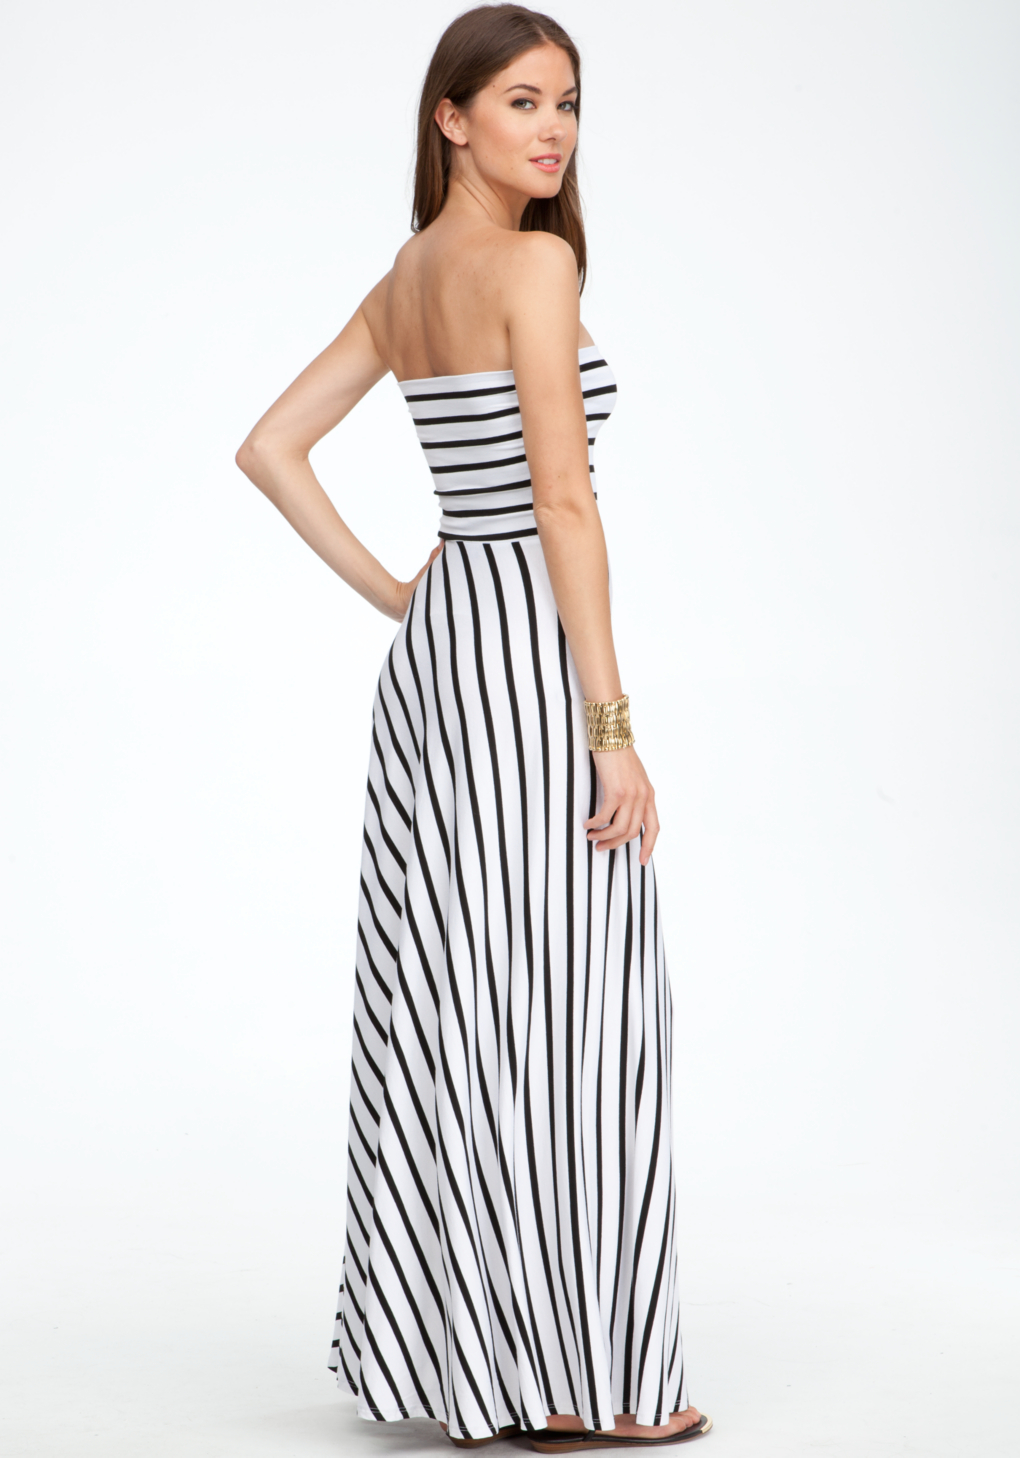 2019 year style- White and Black striped maxi dress bebe